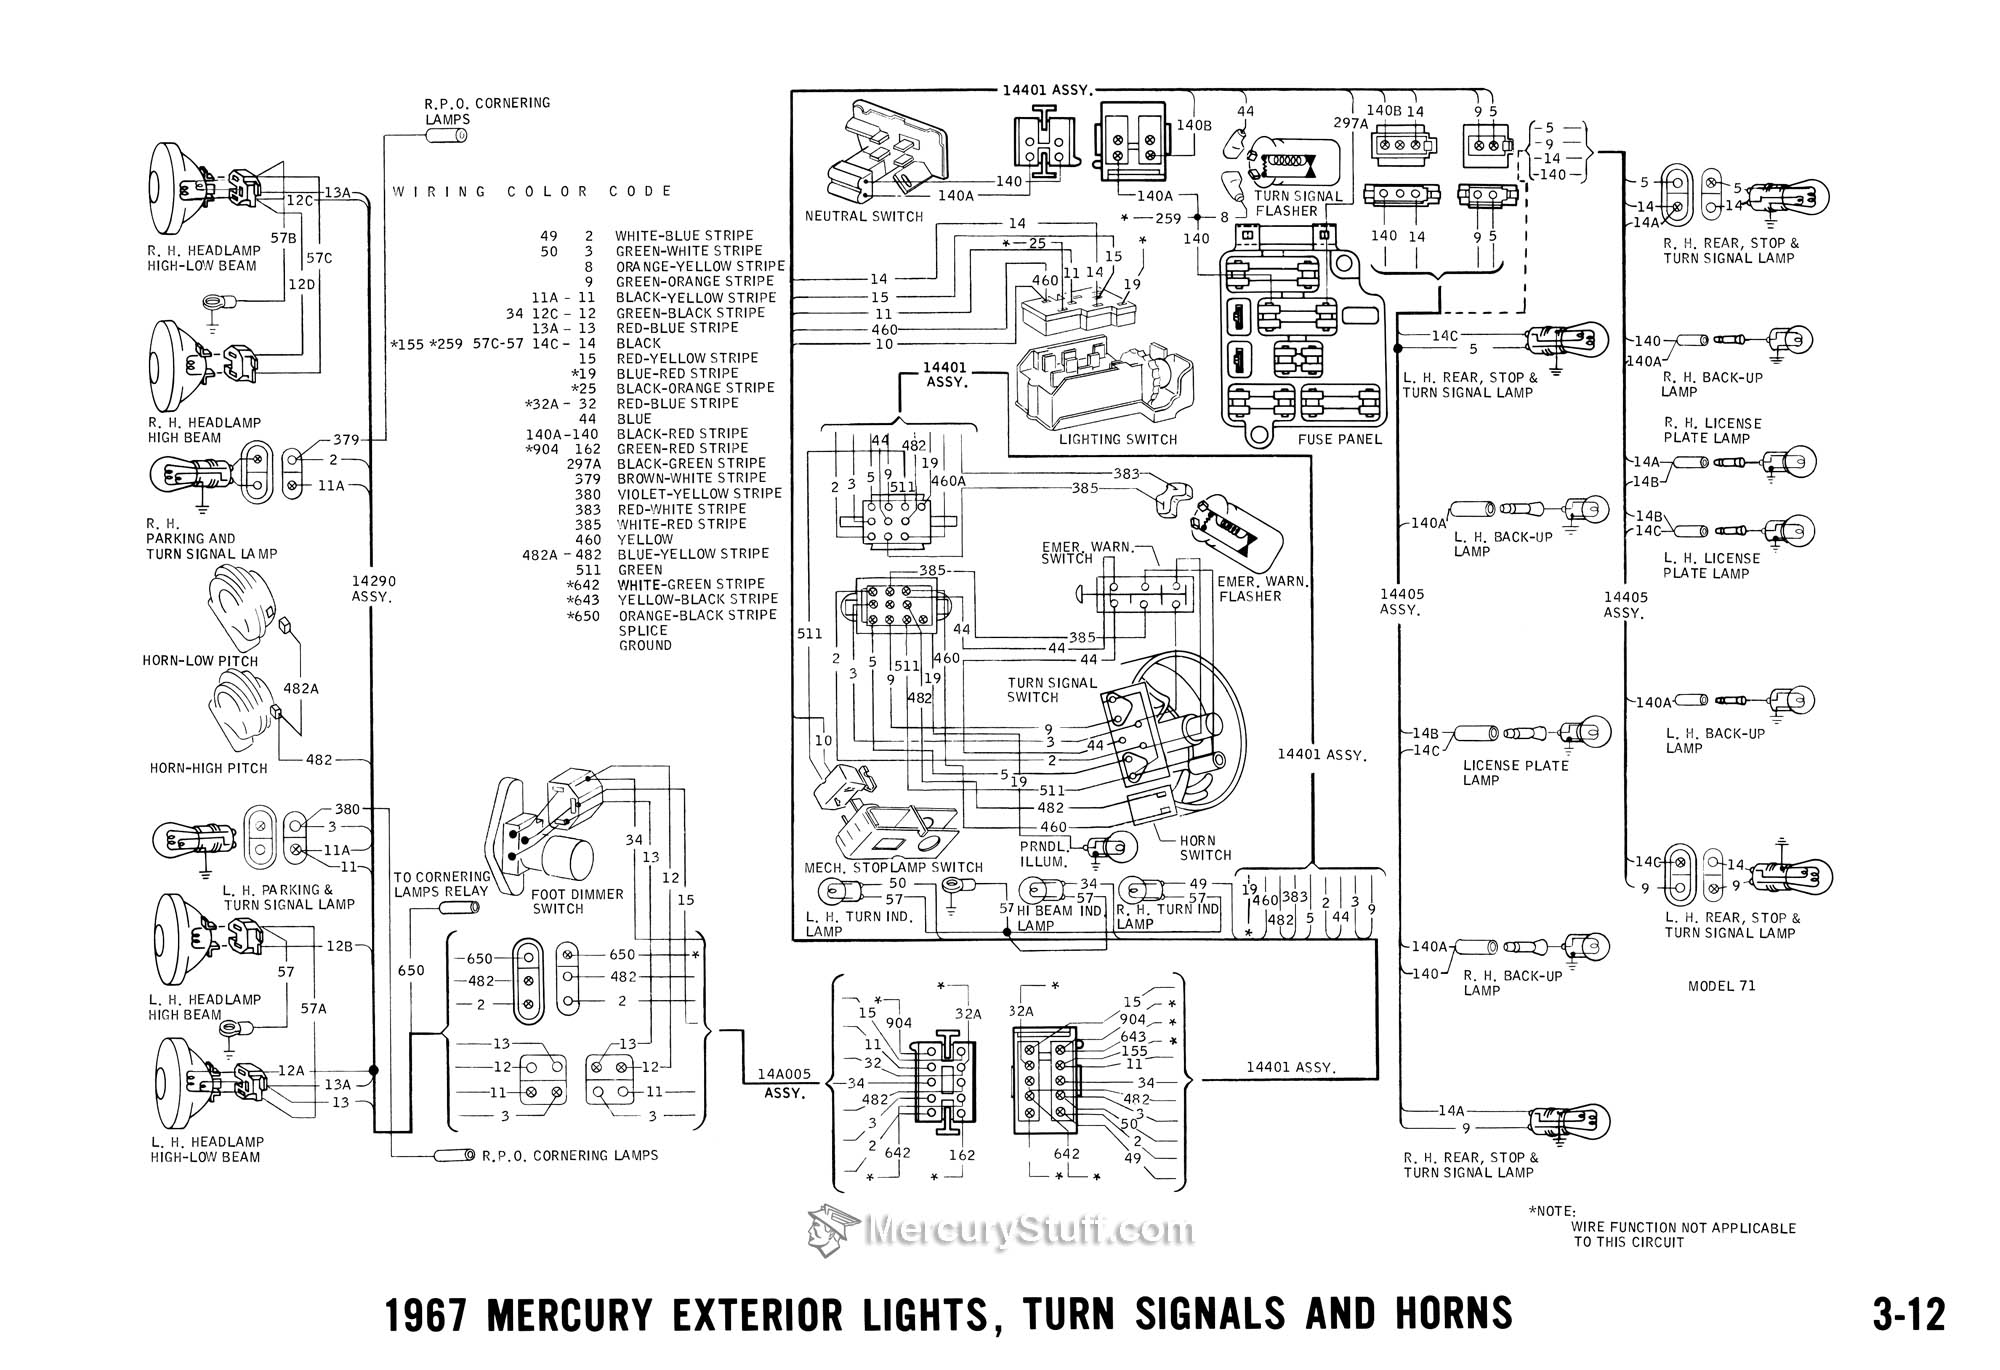 1967 mercury exterior lights turn signals horns wiring diagram 2006 mercury grand marquis the wiring diagram mercury 14 pin wiring harness diagram at metegol.co